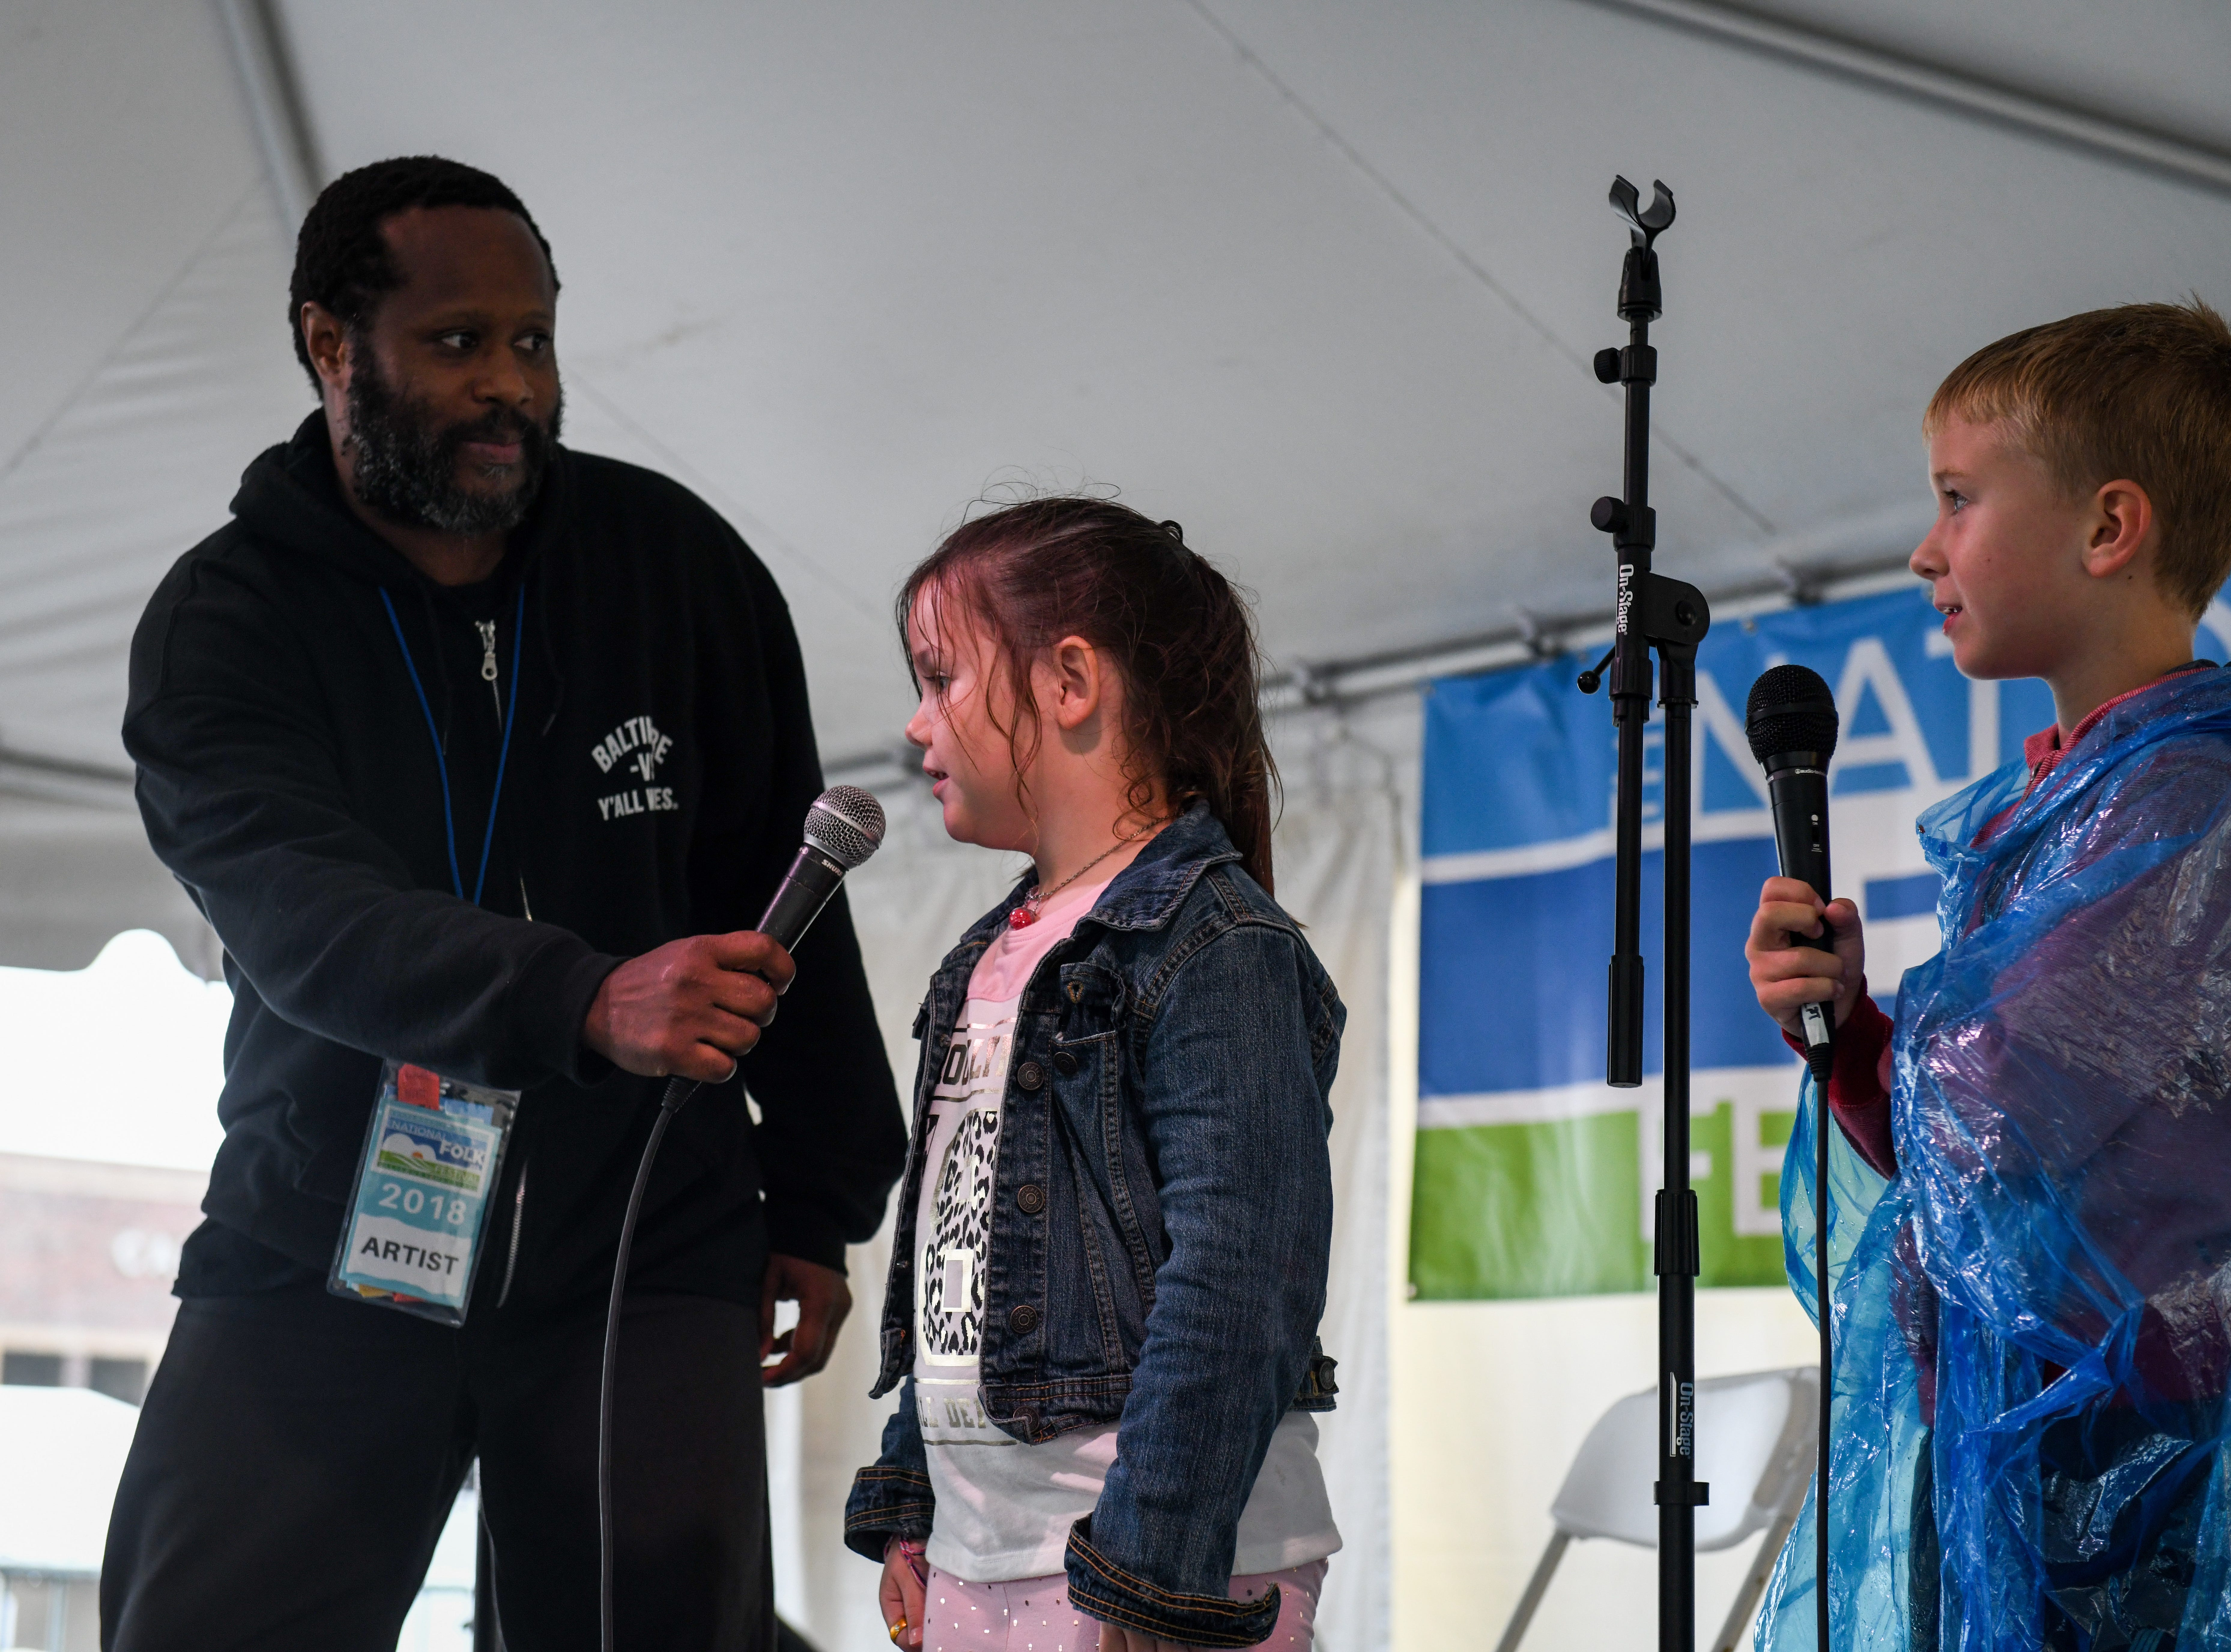 7-year-old Ruby Ludwick learns to beatbox with performer Shodekeh at the National Folk Fest in Salisbury on Sunday, Sept. 9.